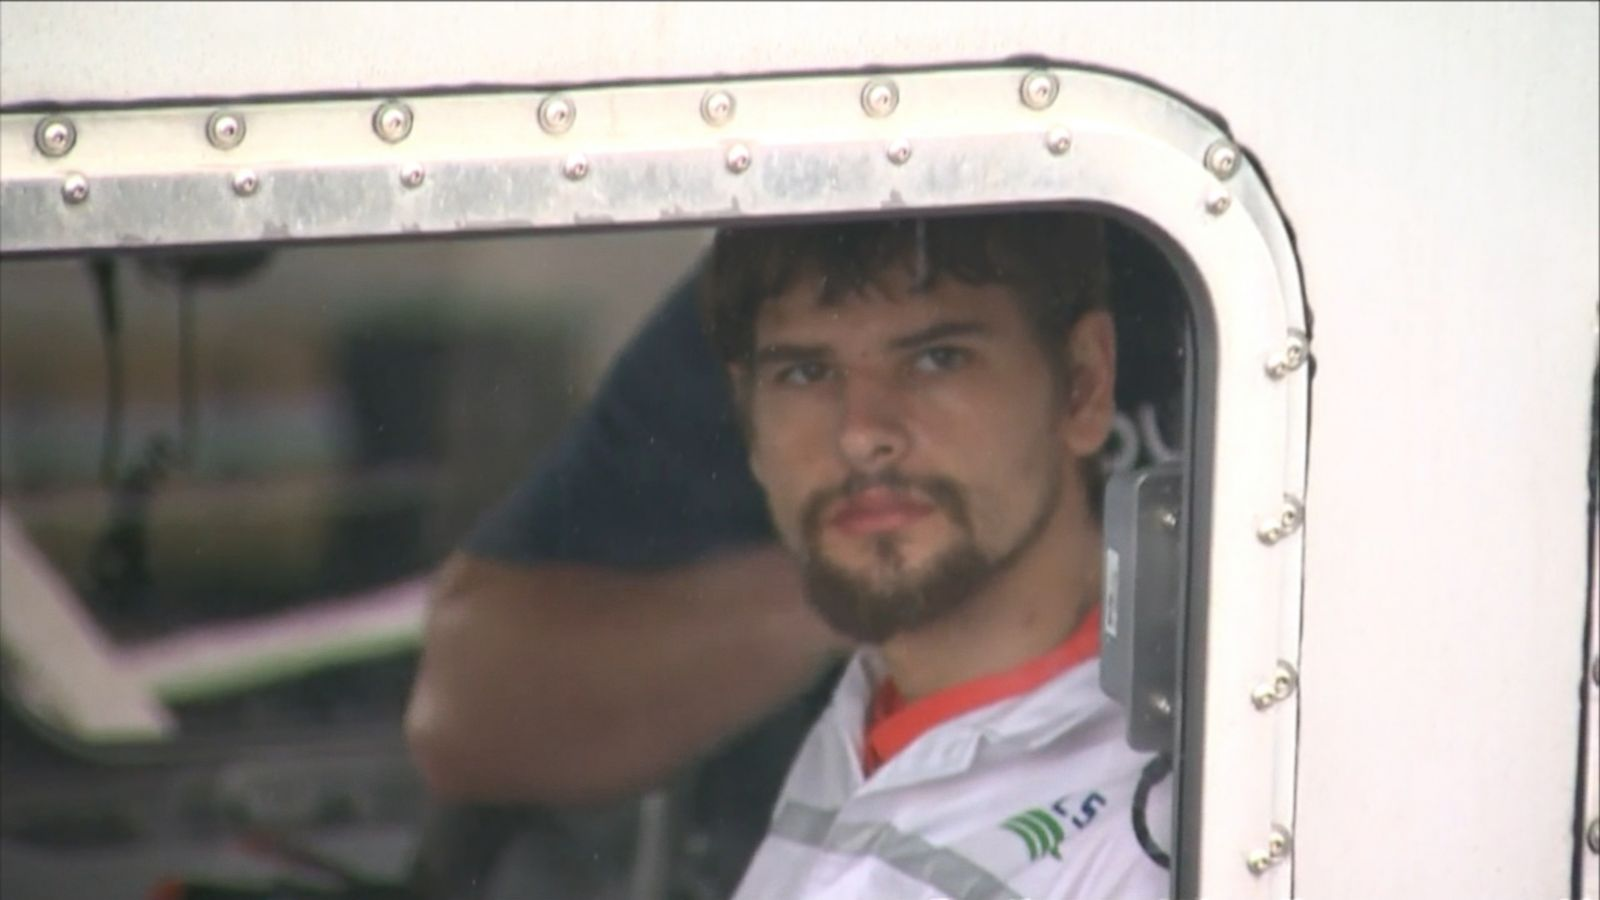 VIDEO: Nathan Carman, who spent eight days adrift at sea after his boat sank, is expected to be reunited with friends and family, even as his mother remains missing.